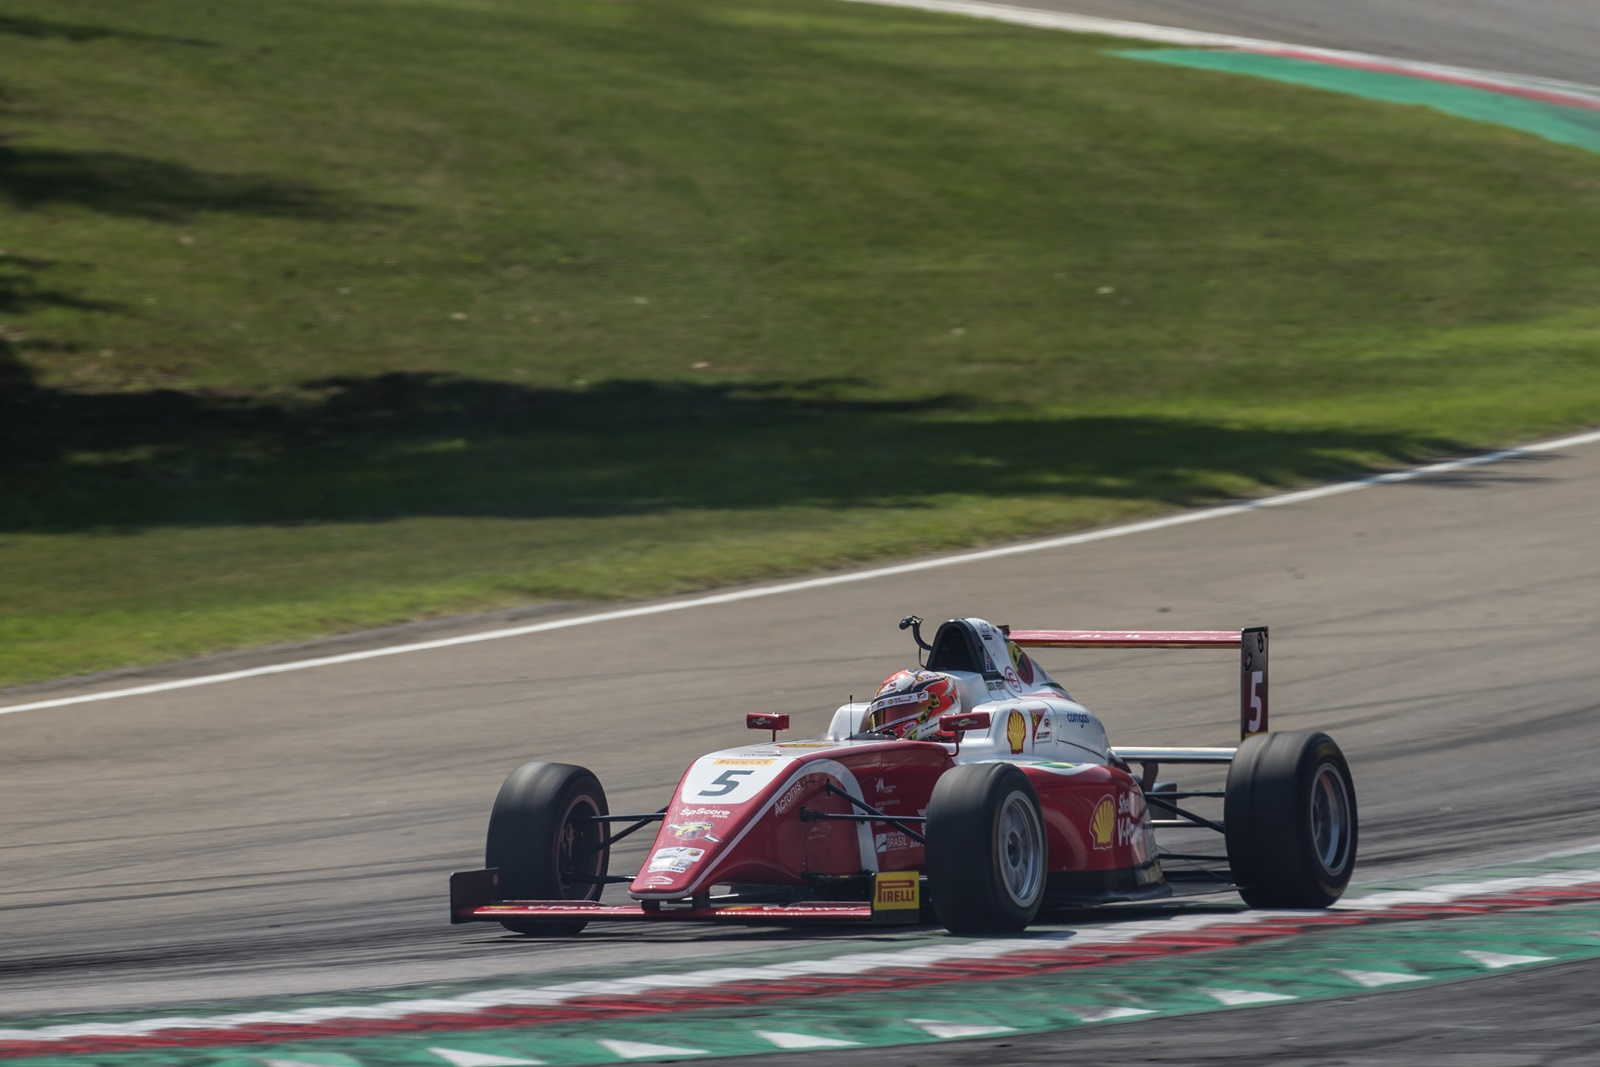 Photo of F4 – Gianluca Petecof arranca pódio na última volta em Imola pelo Italiano de Fórmula 4